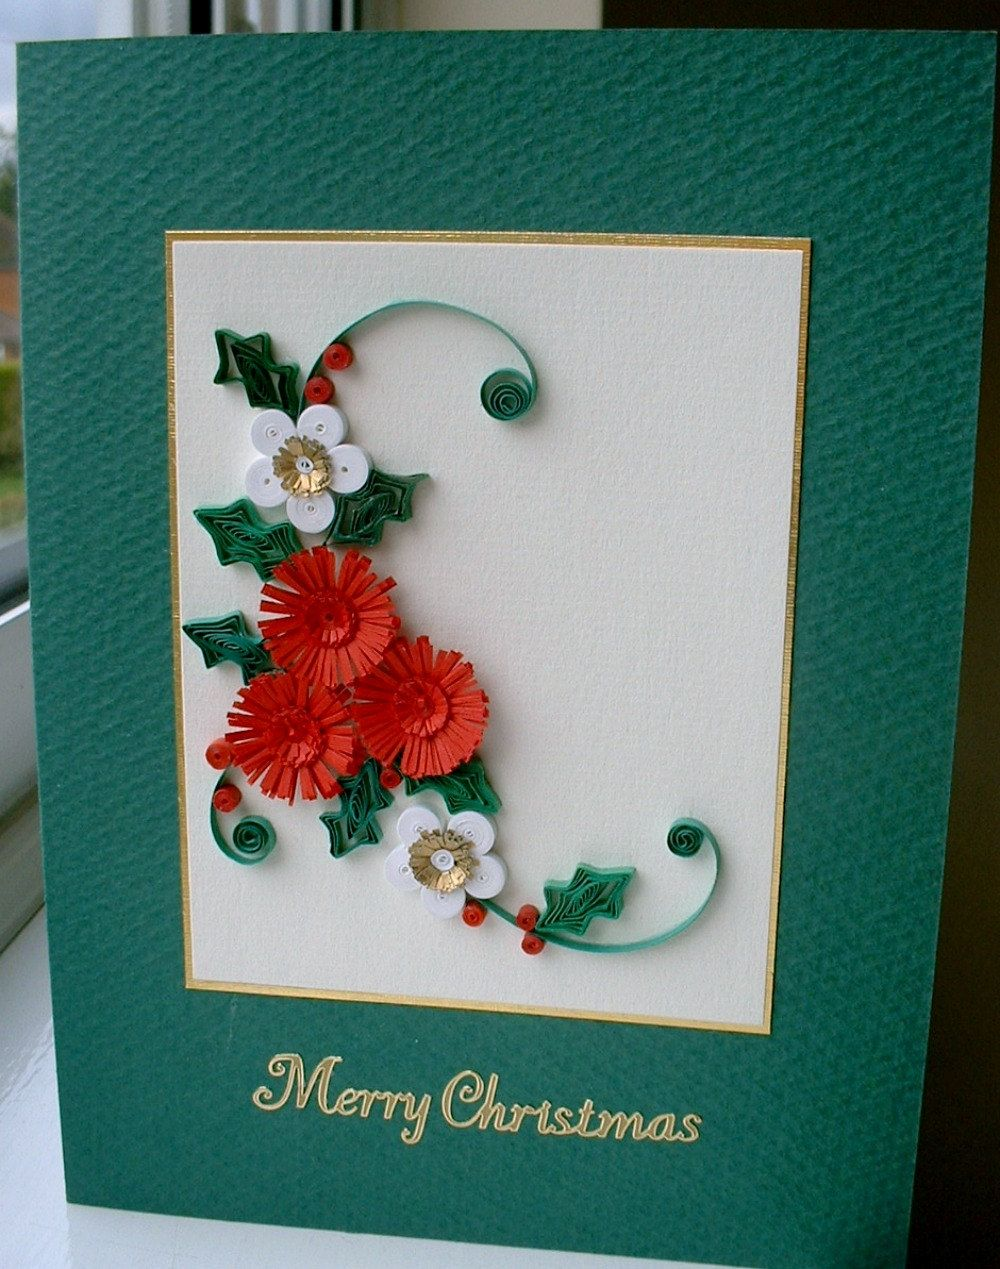 Christmas card quilled paper quilling handmade holidays via Etsy